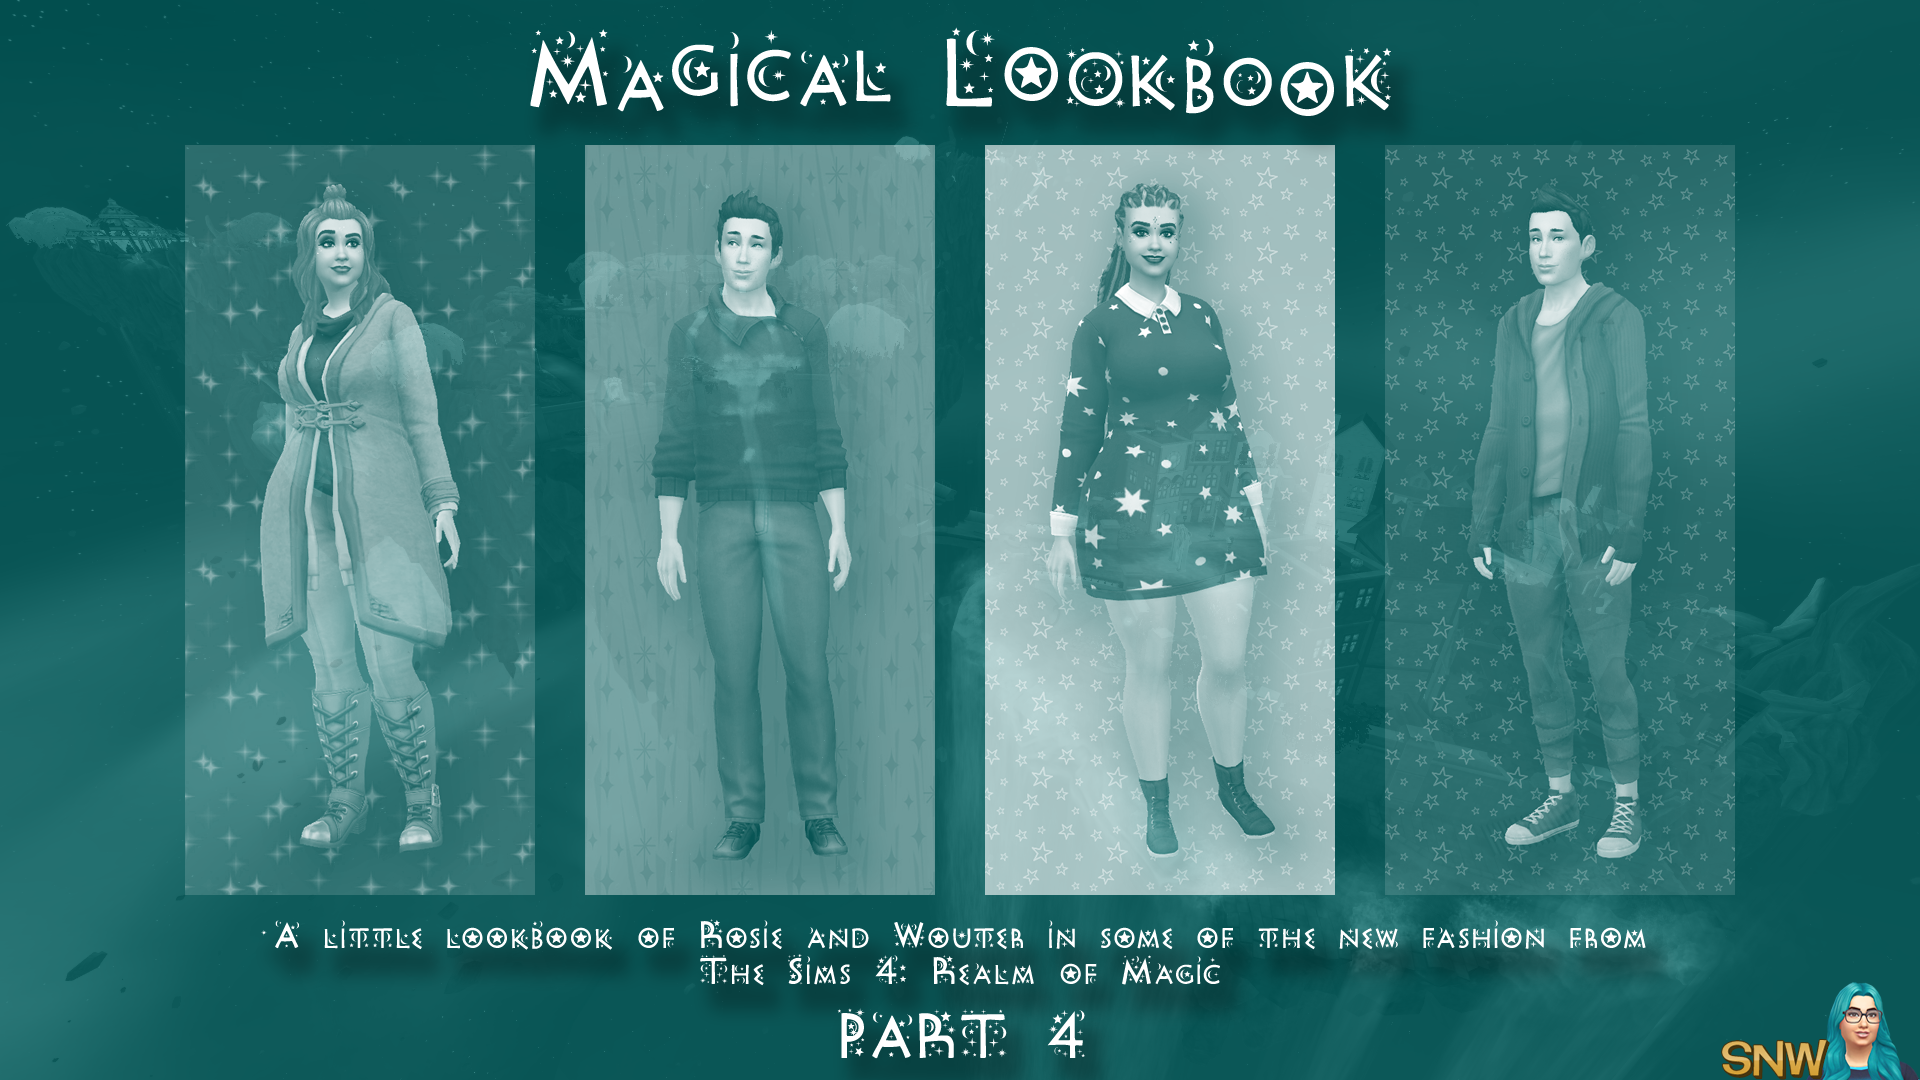 The Sims 4: Realm of Magic - A Little Lookbook by Rosie and Cheetah - Part 4